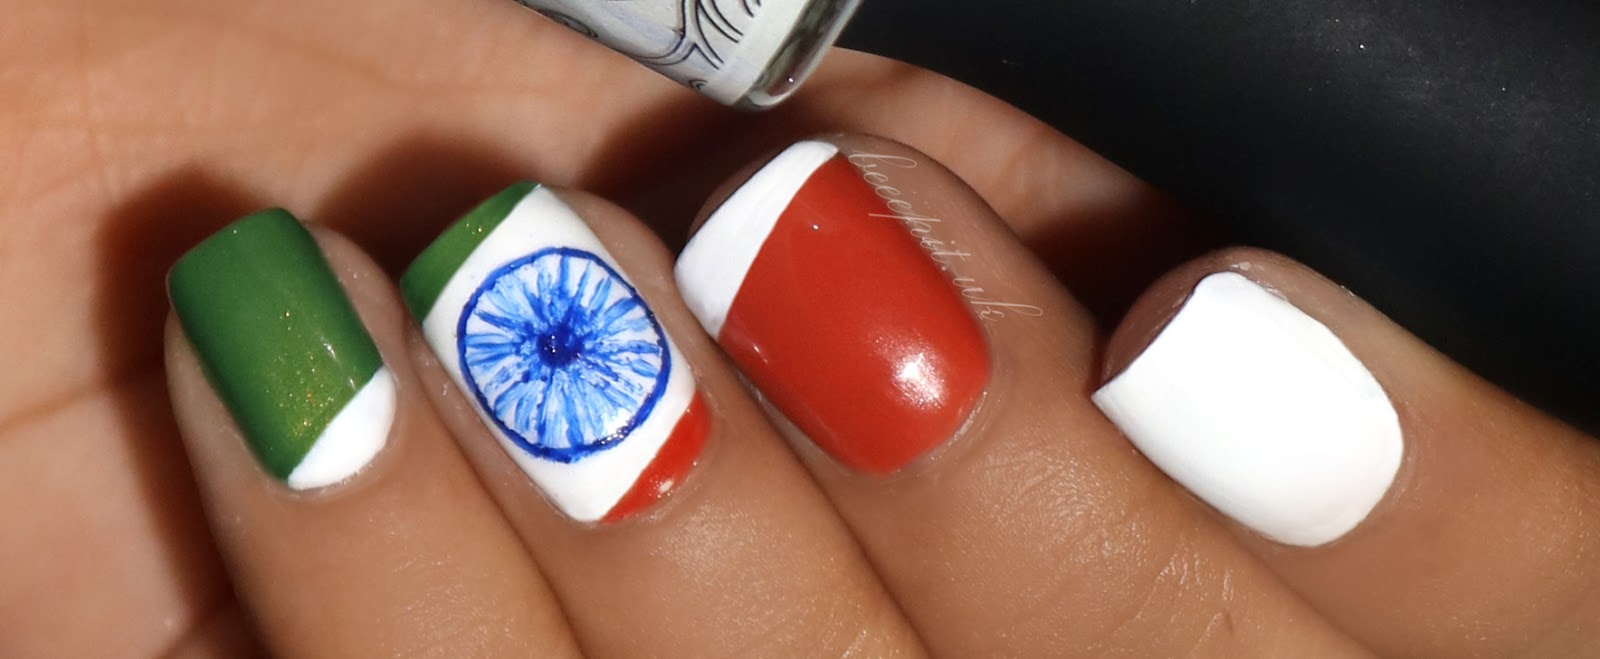 Nail Art Celebrate Republic Day In Tricolor Style